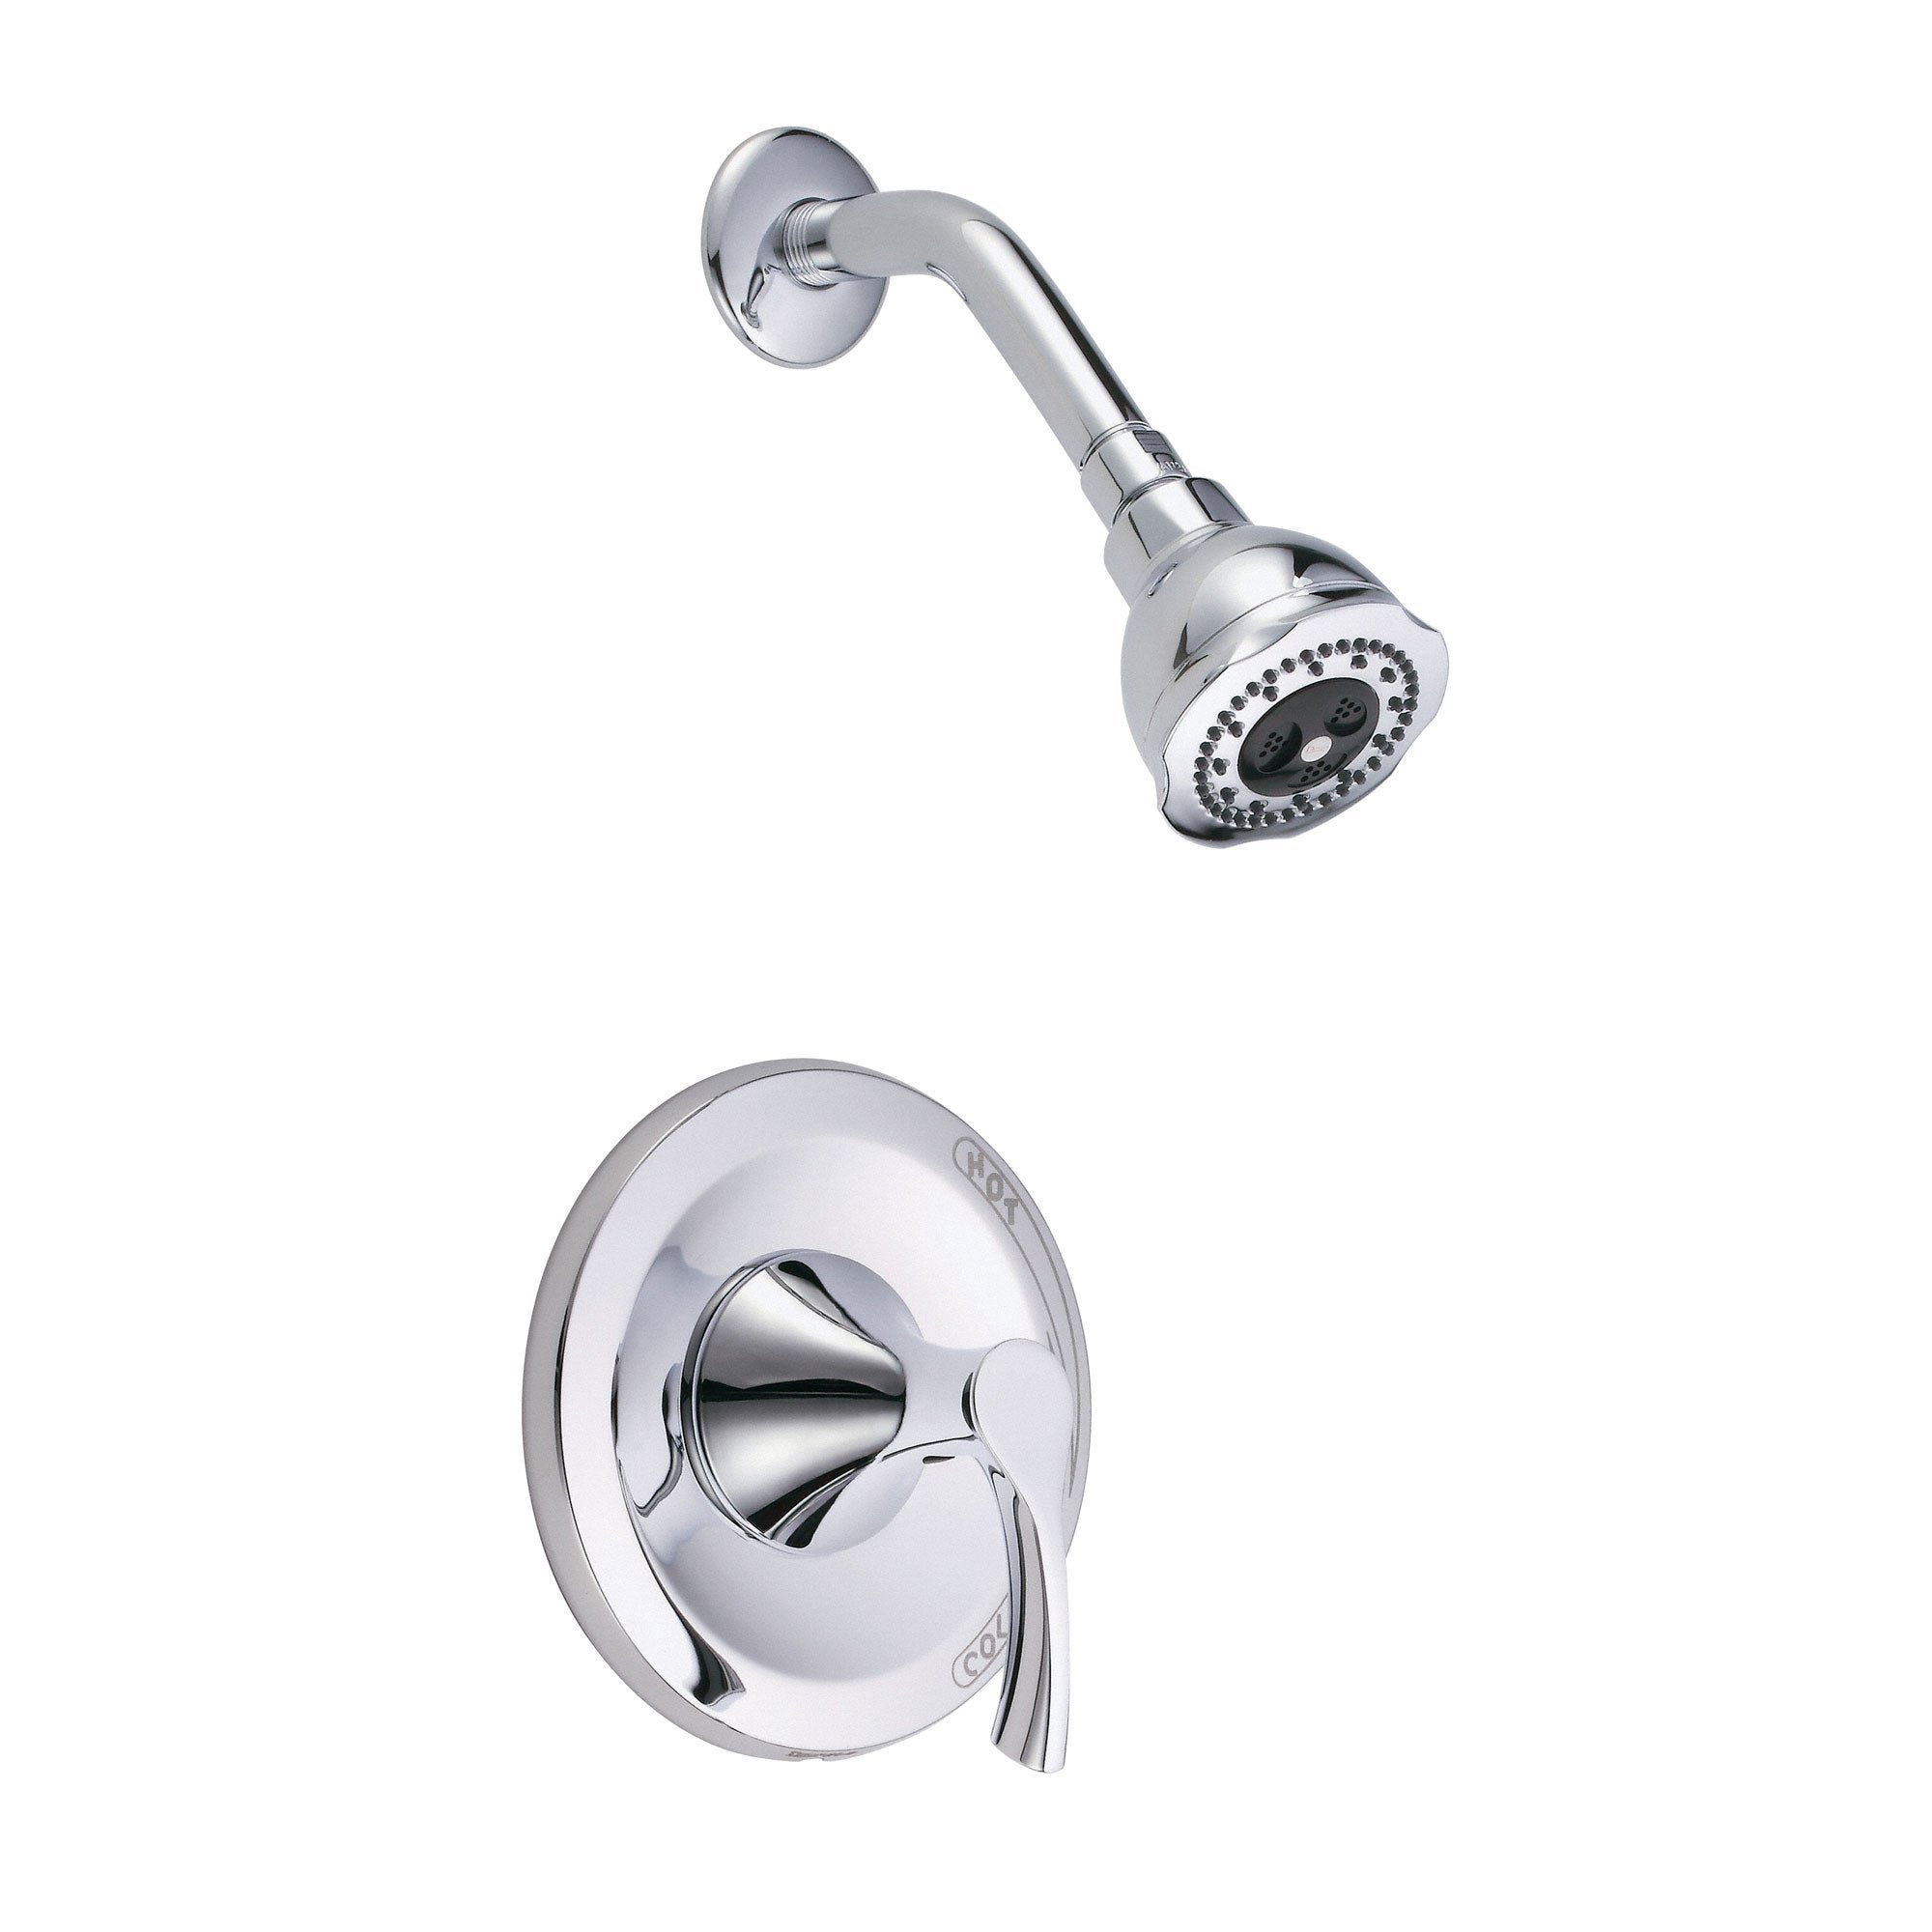 Danze Antioch Chrome Single Handle Pressure Balance Shower Faucet INCLUDES Rough-in Valve